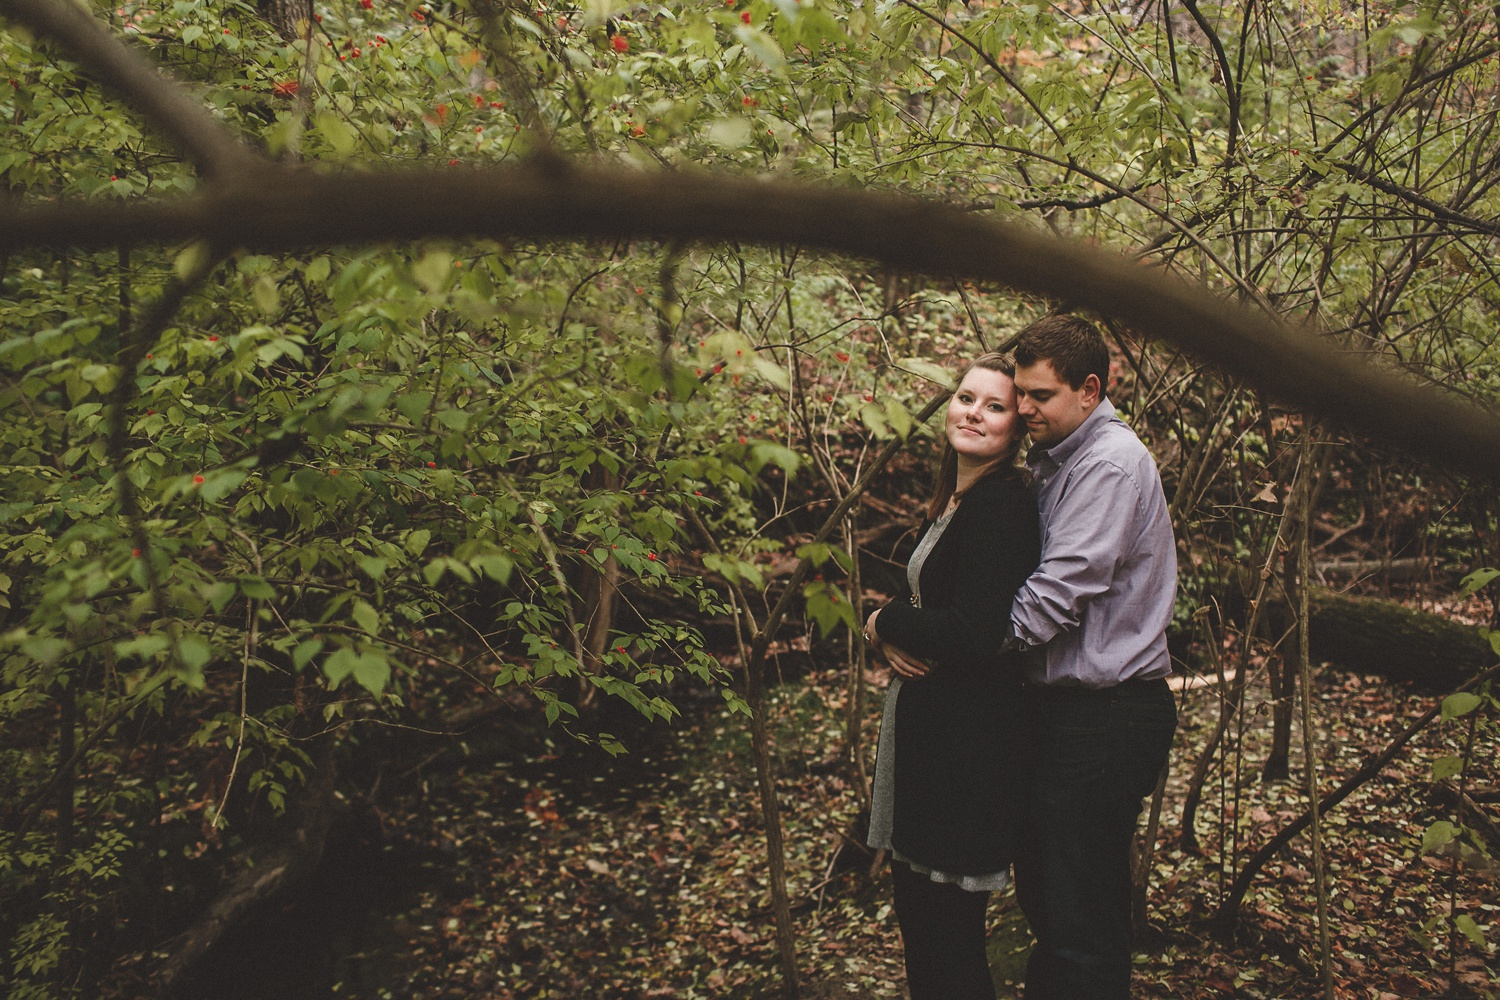 rock_cut_state_park_rockford_IL_engagement_photographer_0026.jpg